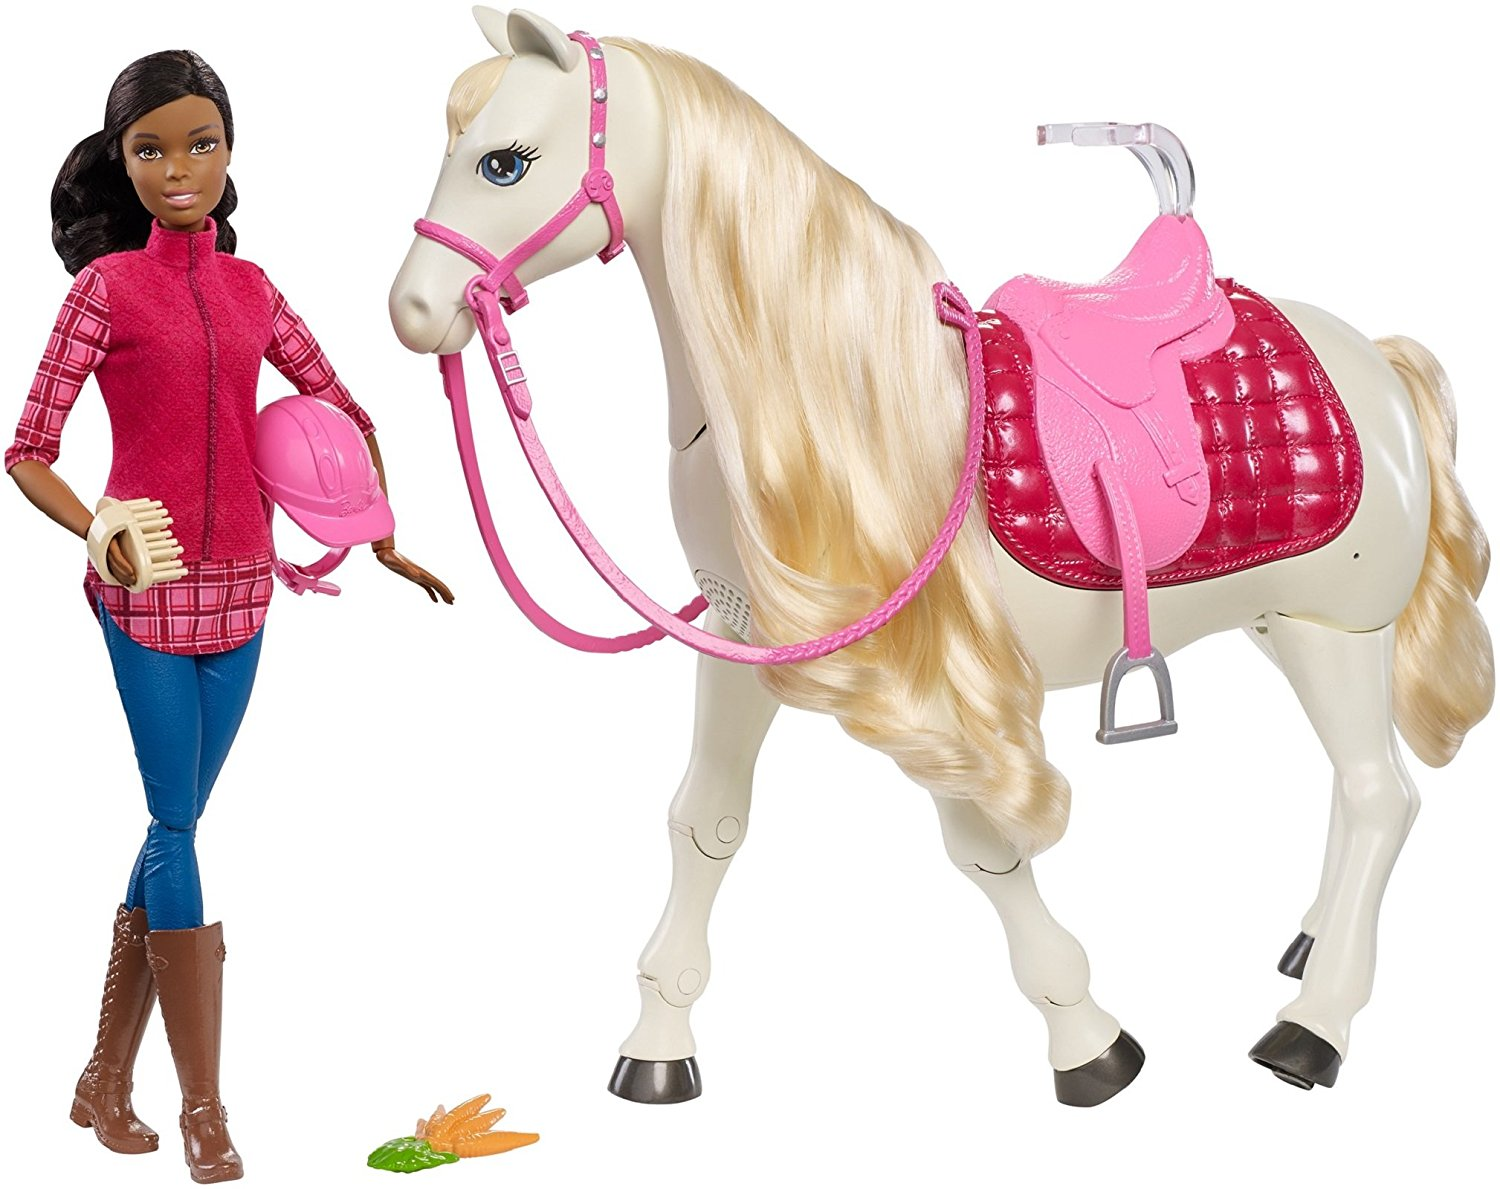 Barbie and her DreamHorse Toy Horses for Girls